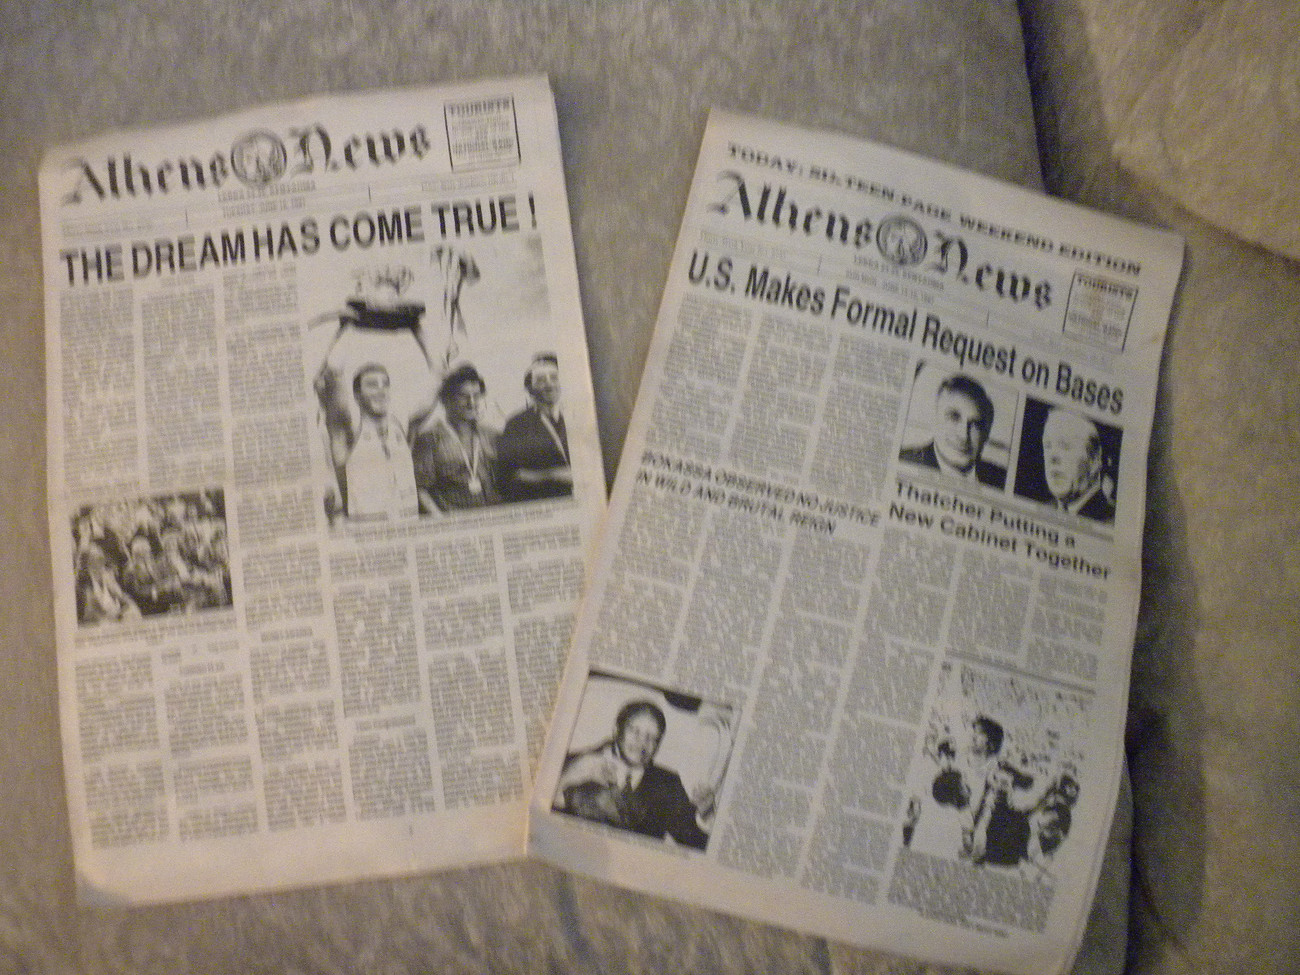 Primary image for 2 issues fr June 1987 orig Athens News w Greece European Basketball Champions